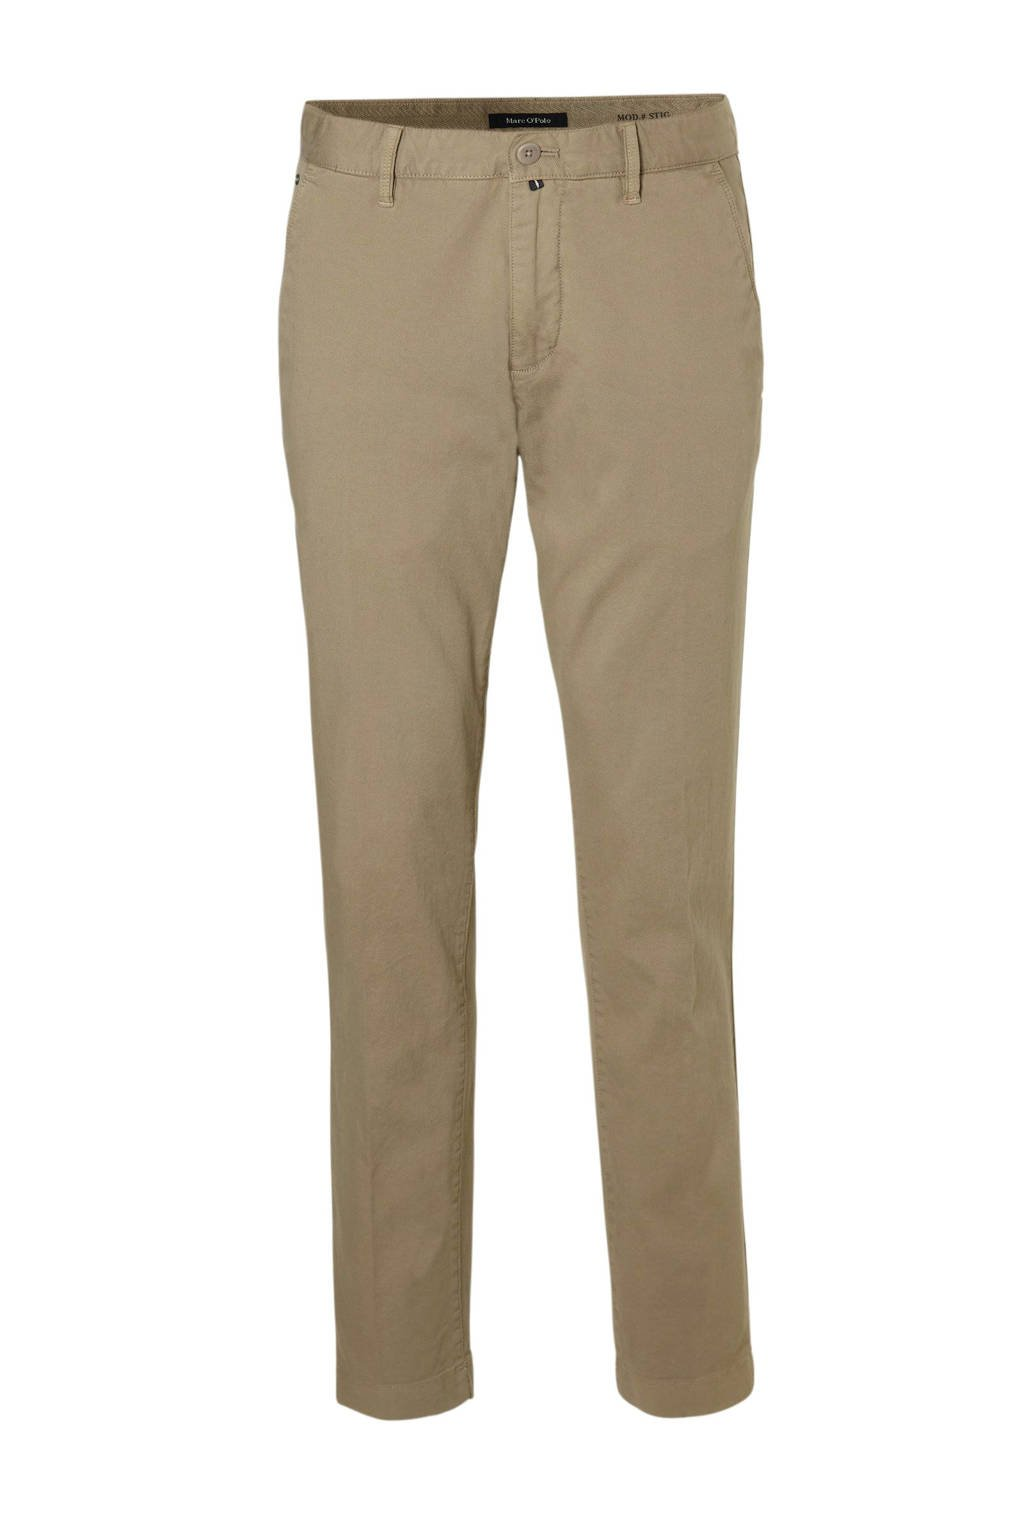 Marc O'Polo tapered fit chino Stig, Camel